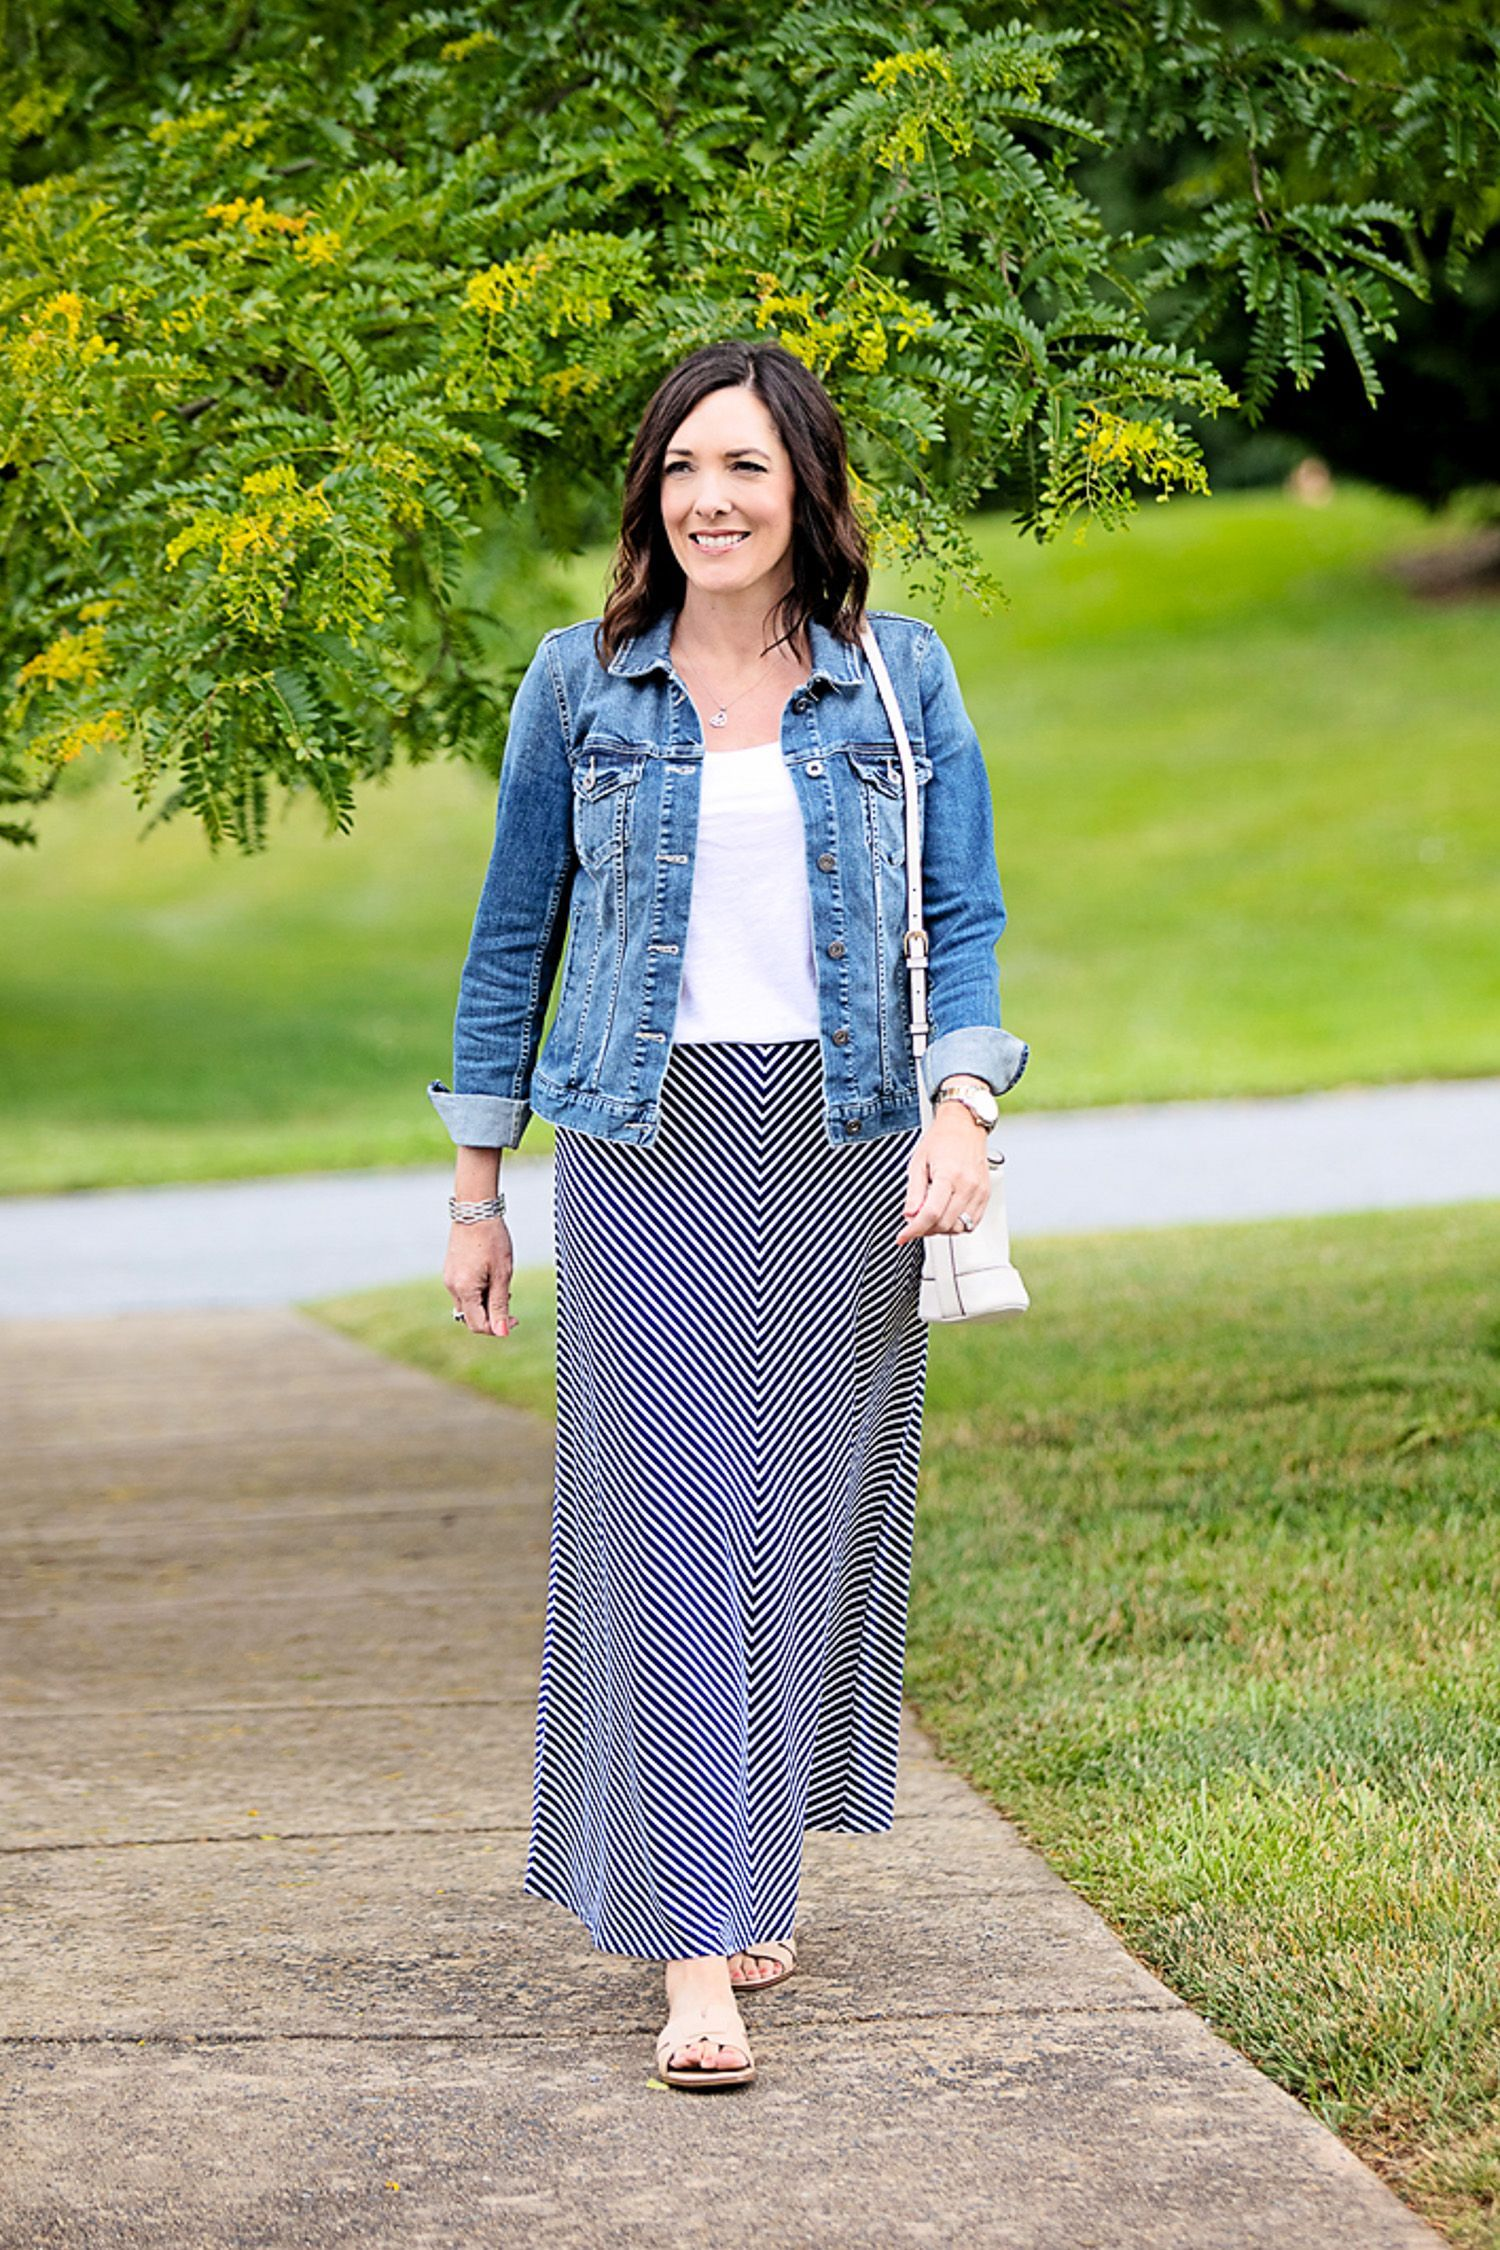 chevron #outfit #summer #camuto #jacket #gianna #slides